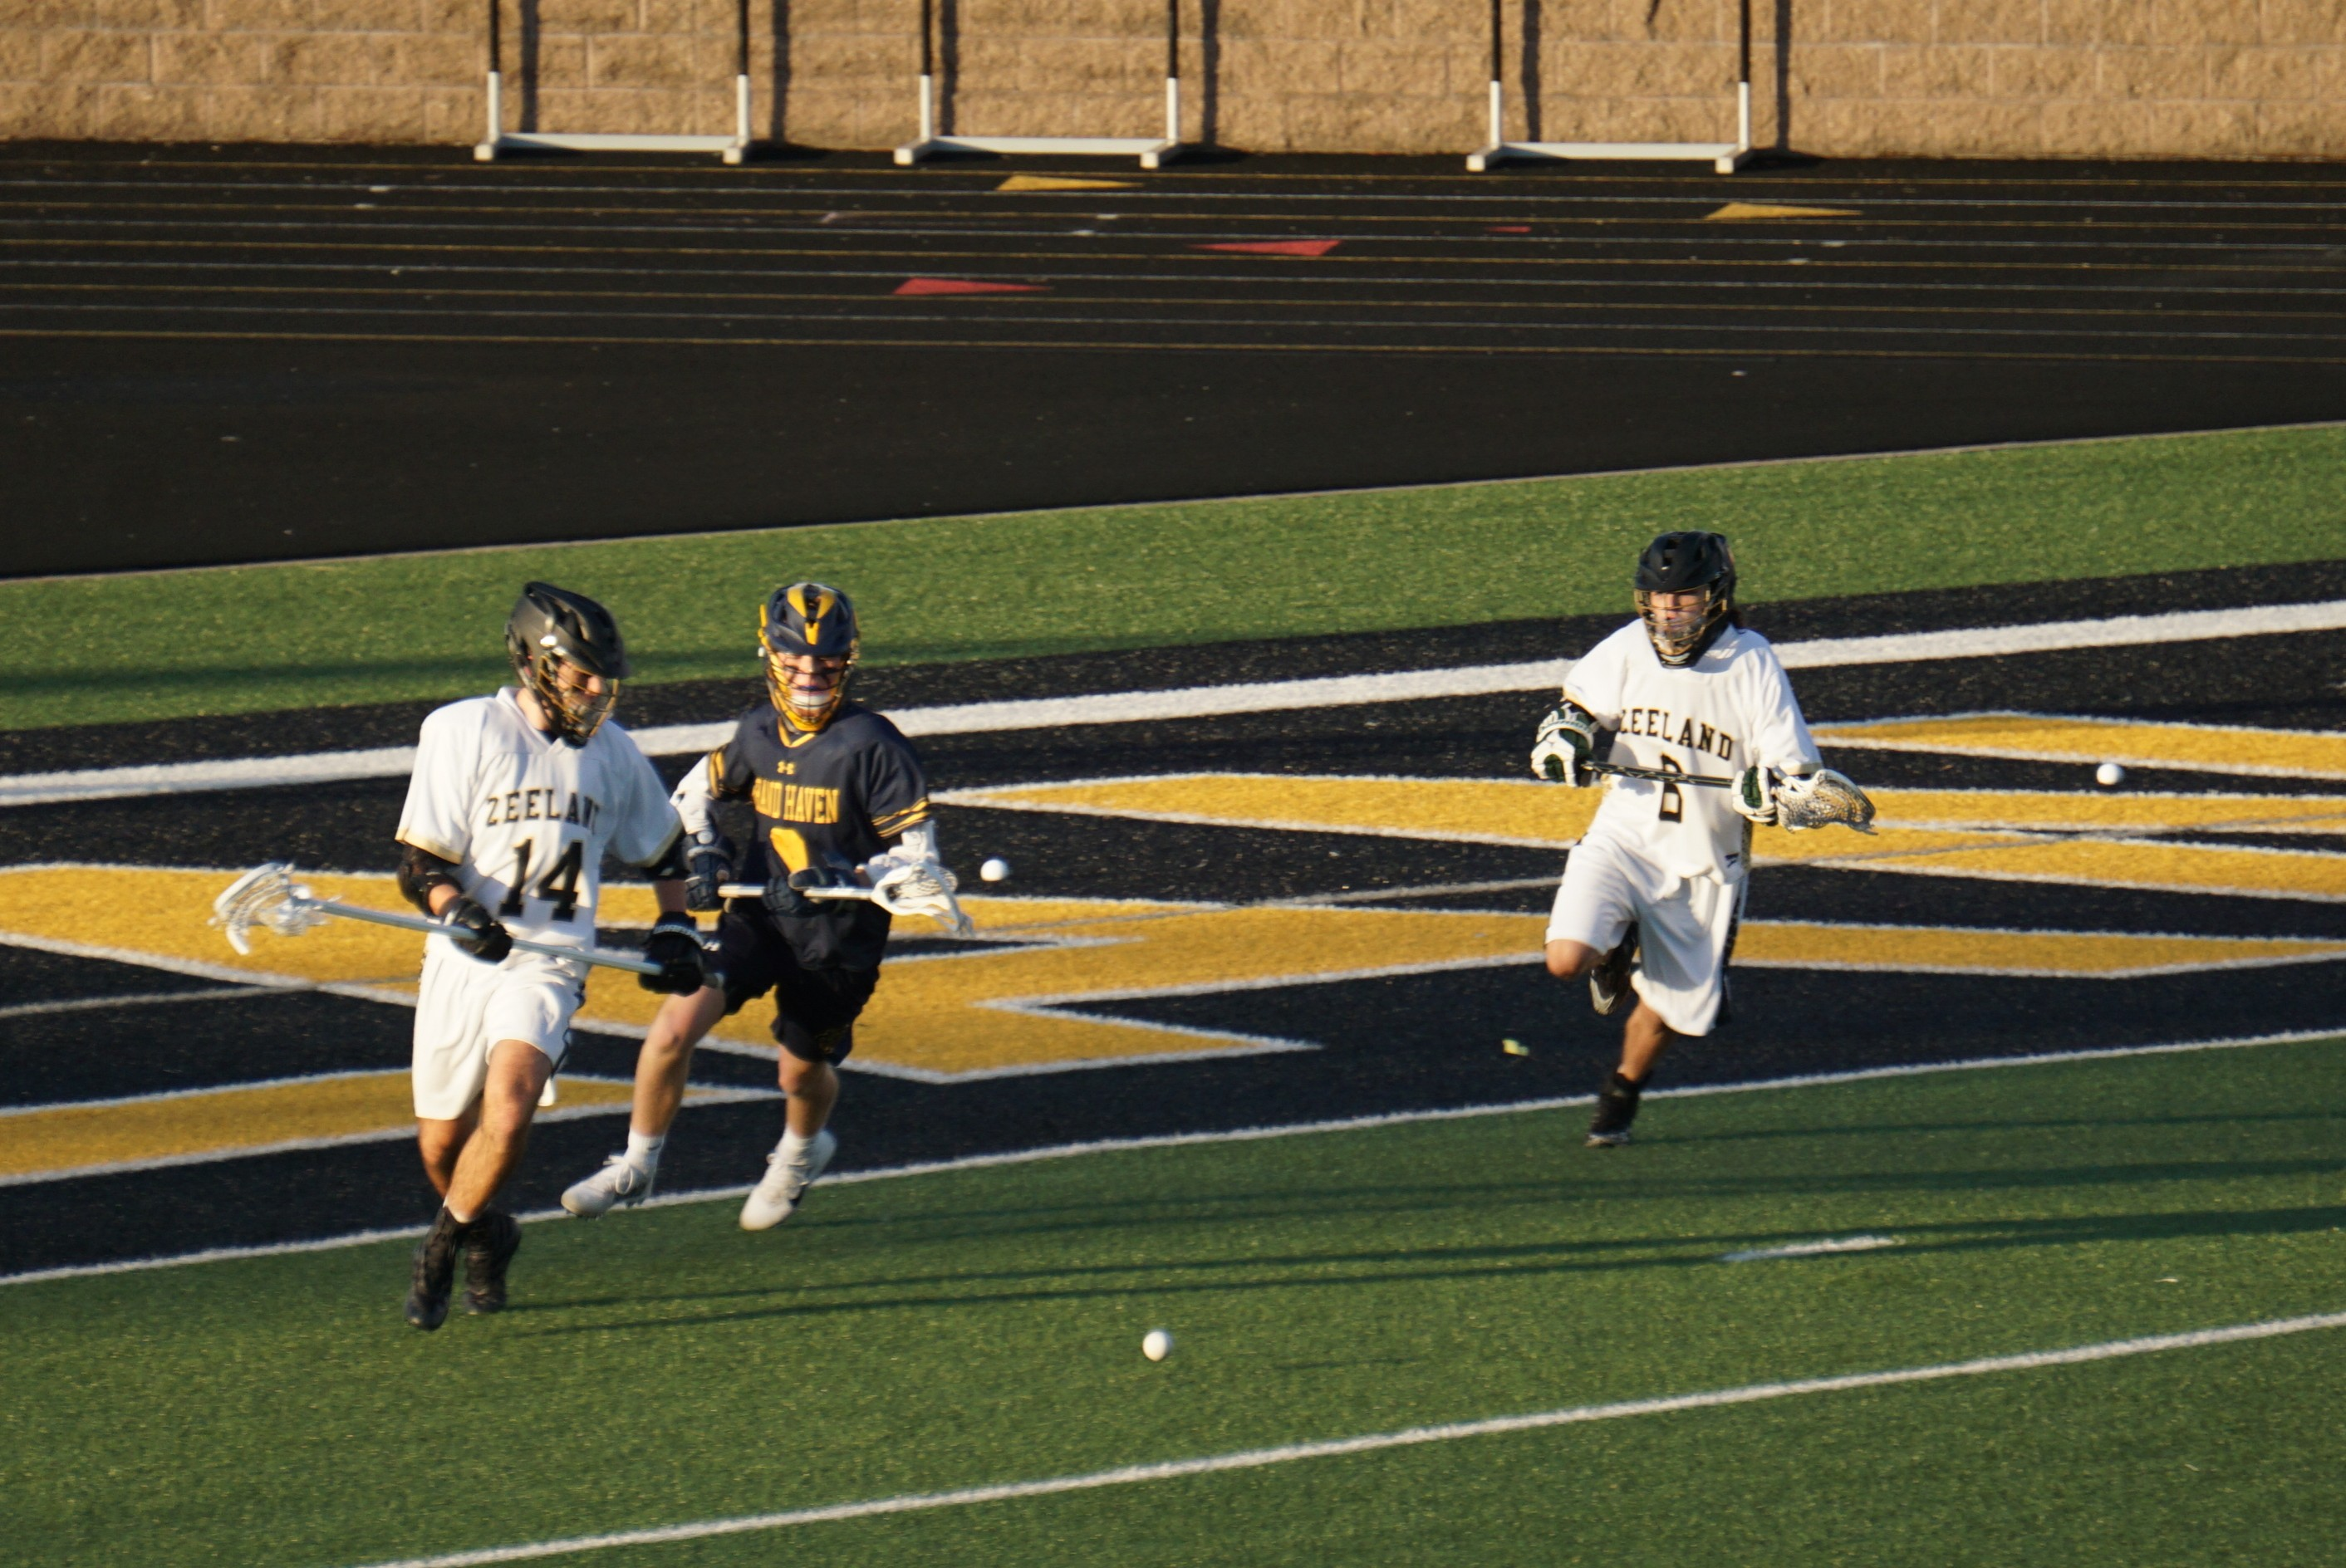 Boys Varsity Lacrosse - Co-op